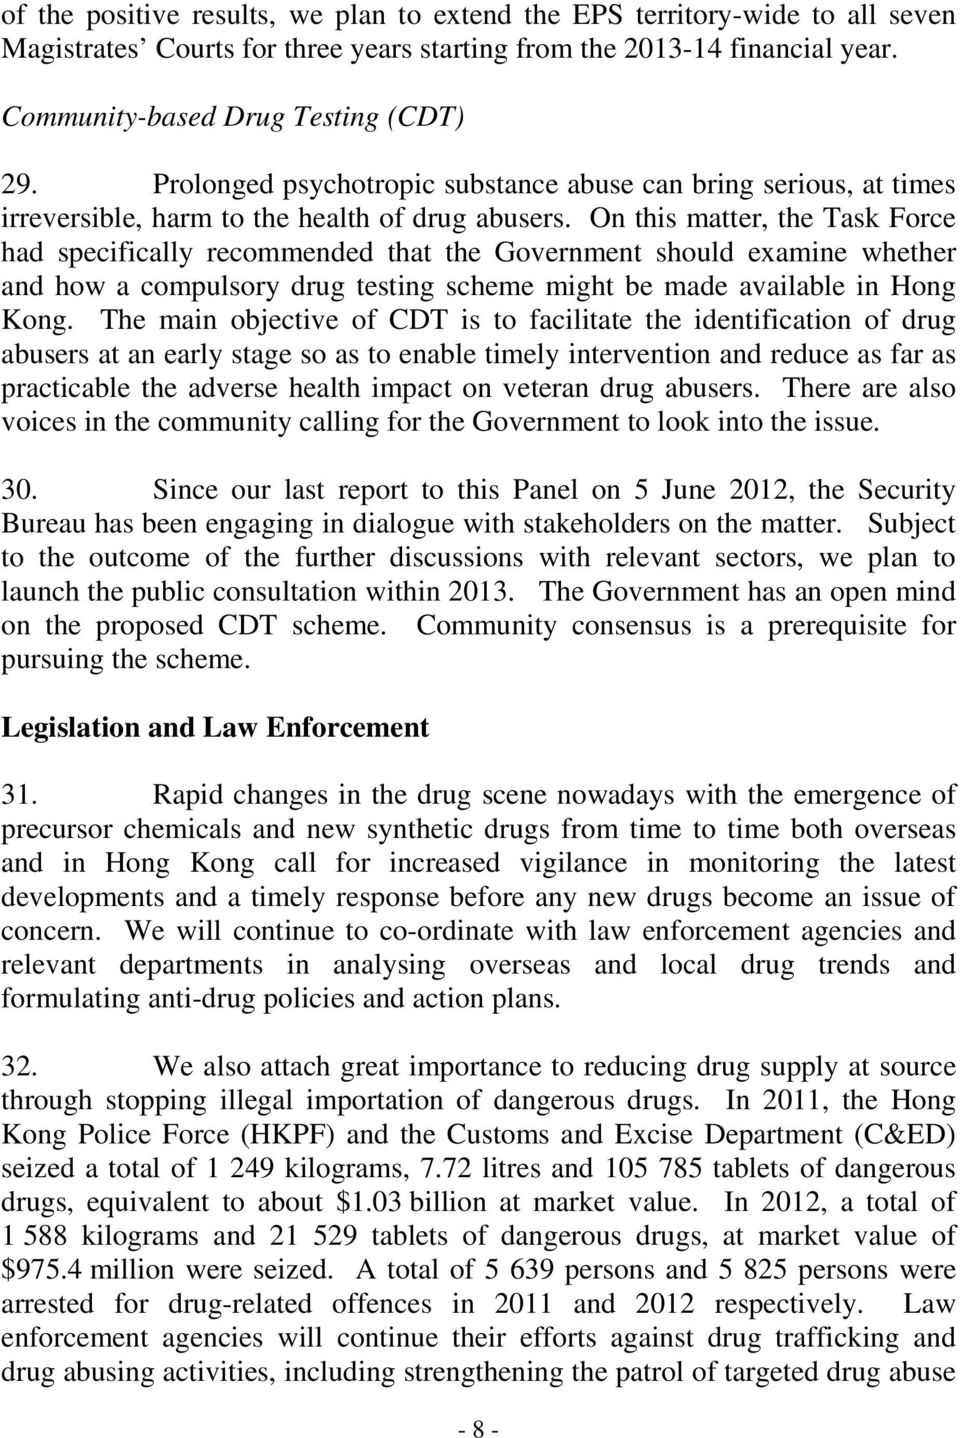 On this matter, the Task Force had specifically recommended that the Government should examine whether and how a compulsory drug testing scheme might be made available in Hong Kong.